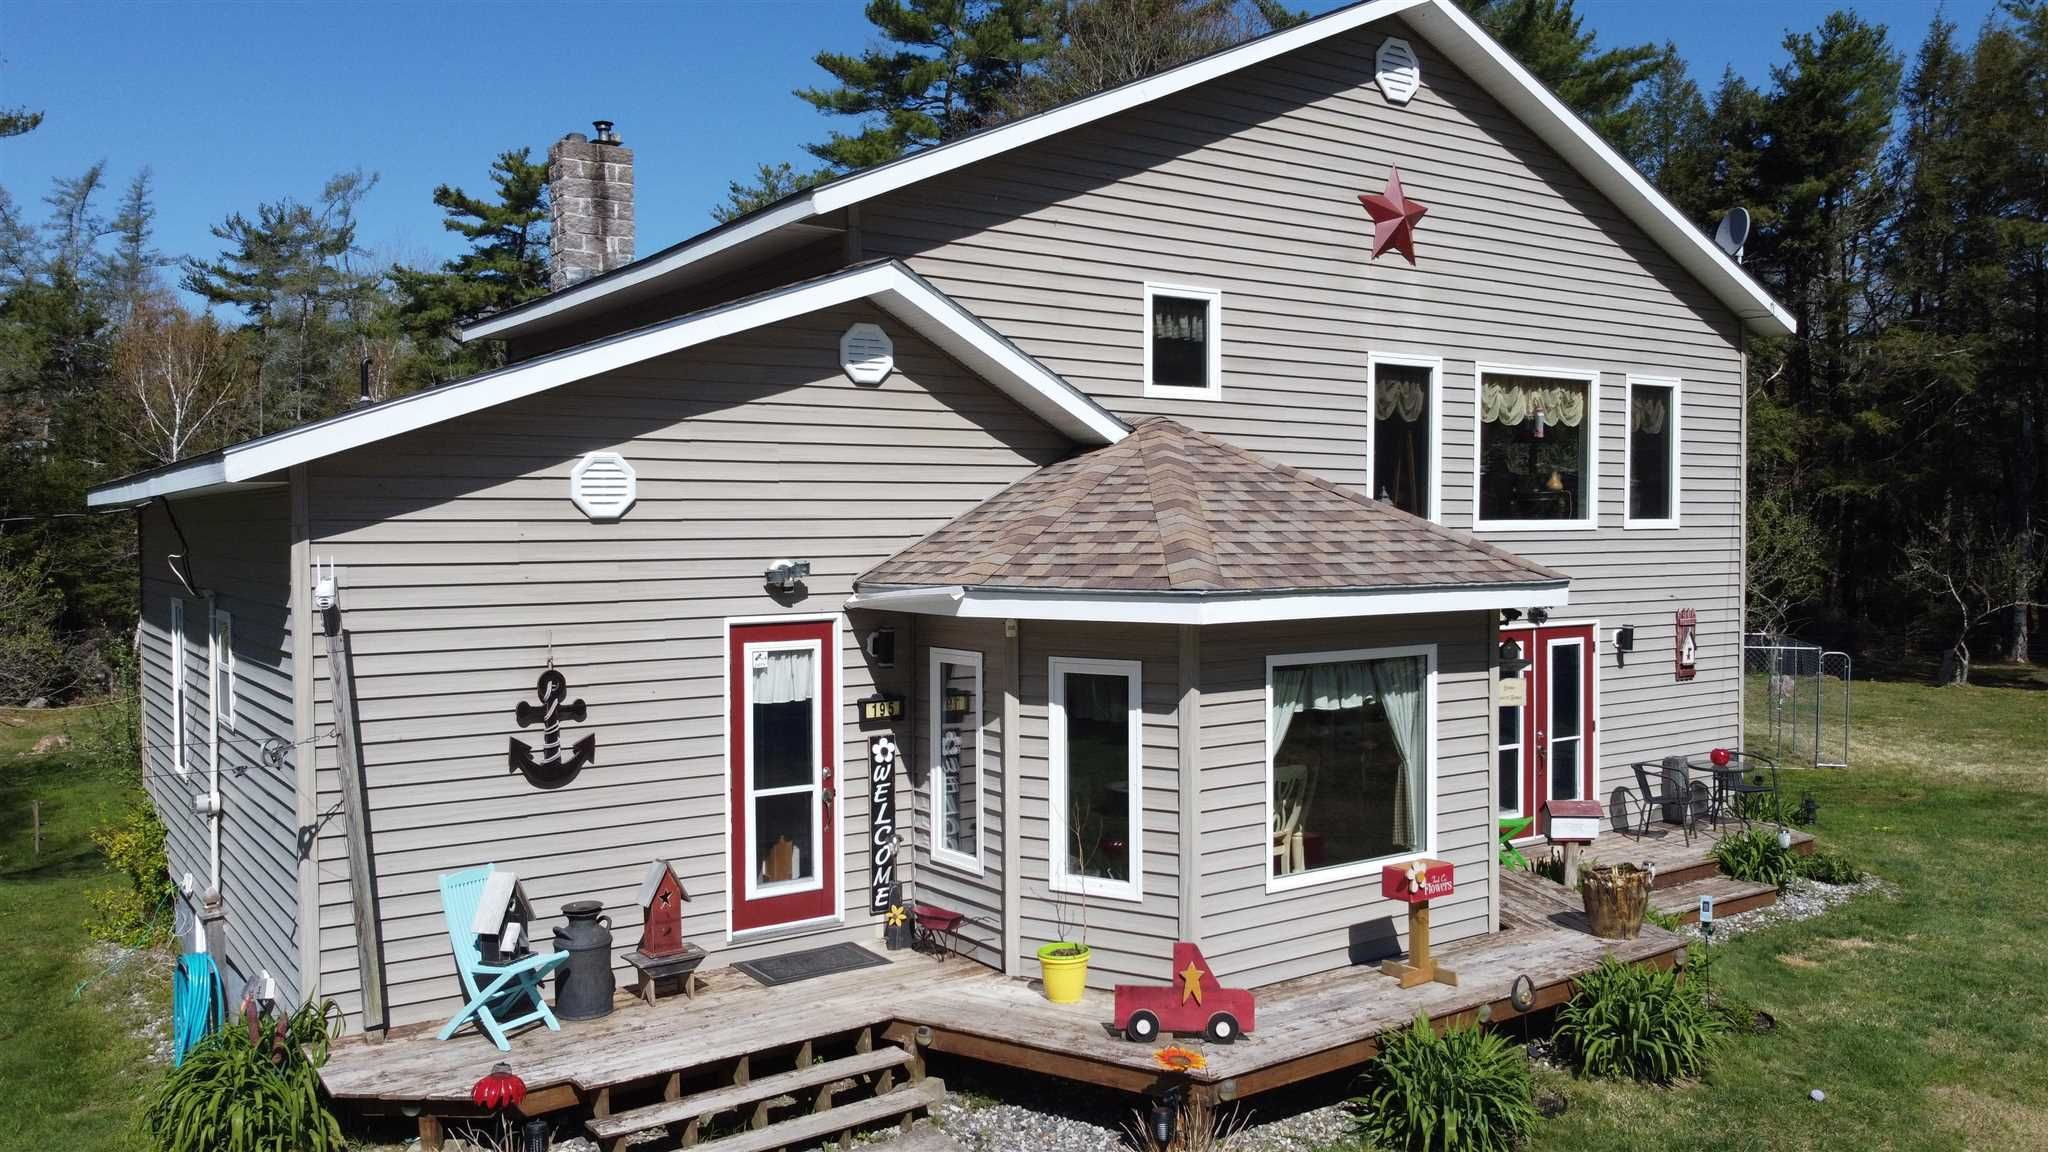 Main Photo: 195 Back Lake Road in Upper Ohio: 407-Shelburne County Residential for sale (South Shore)  : MLS®# 202112479